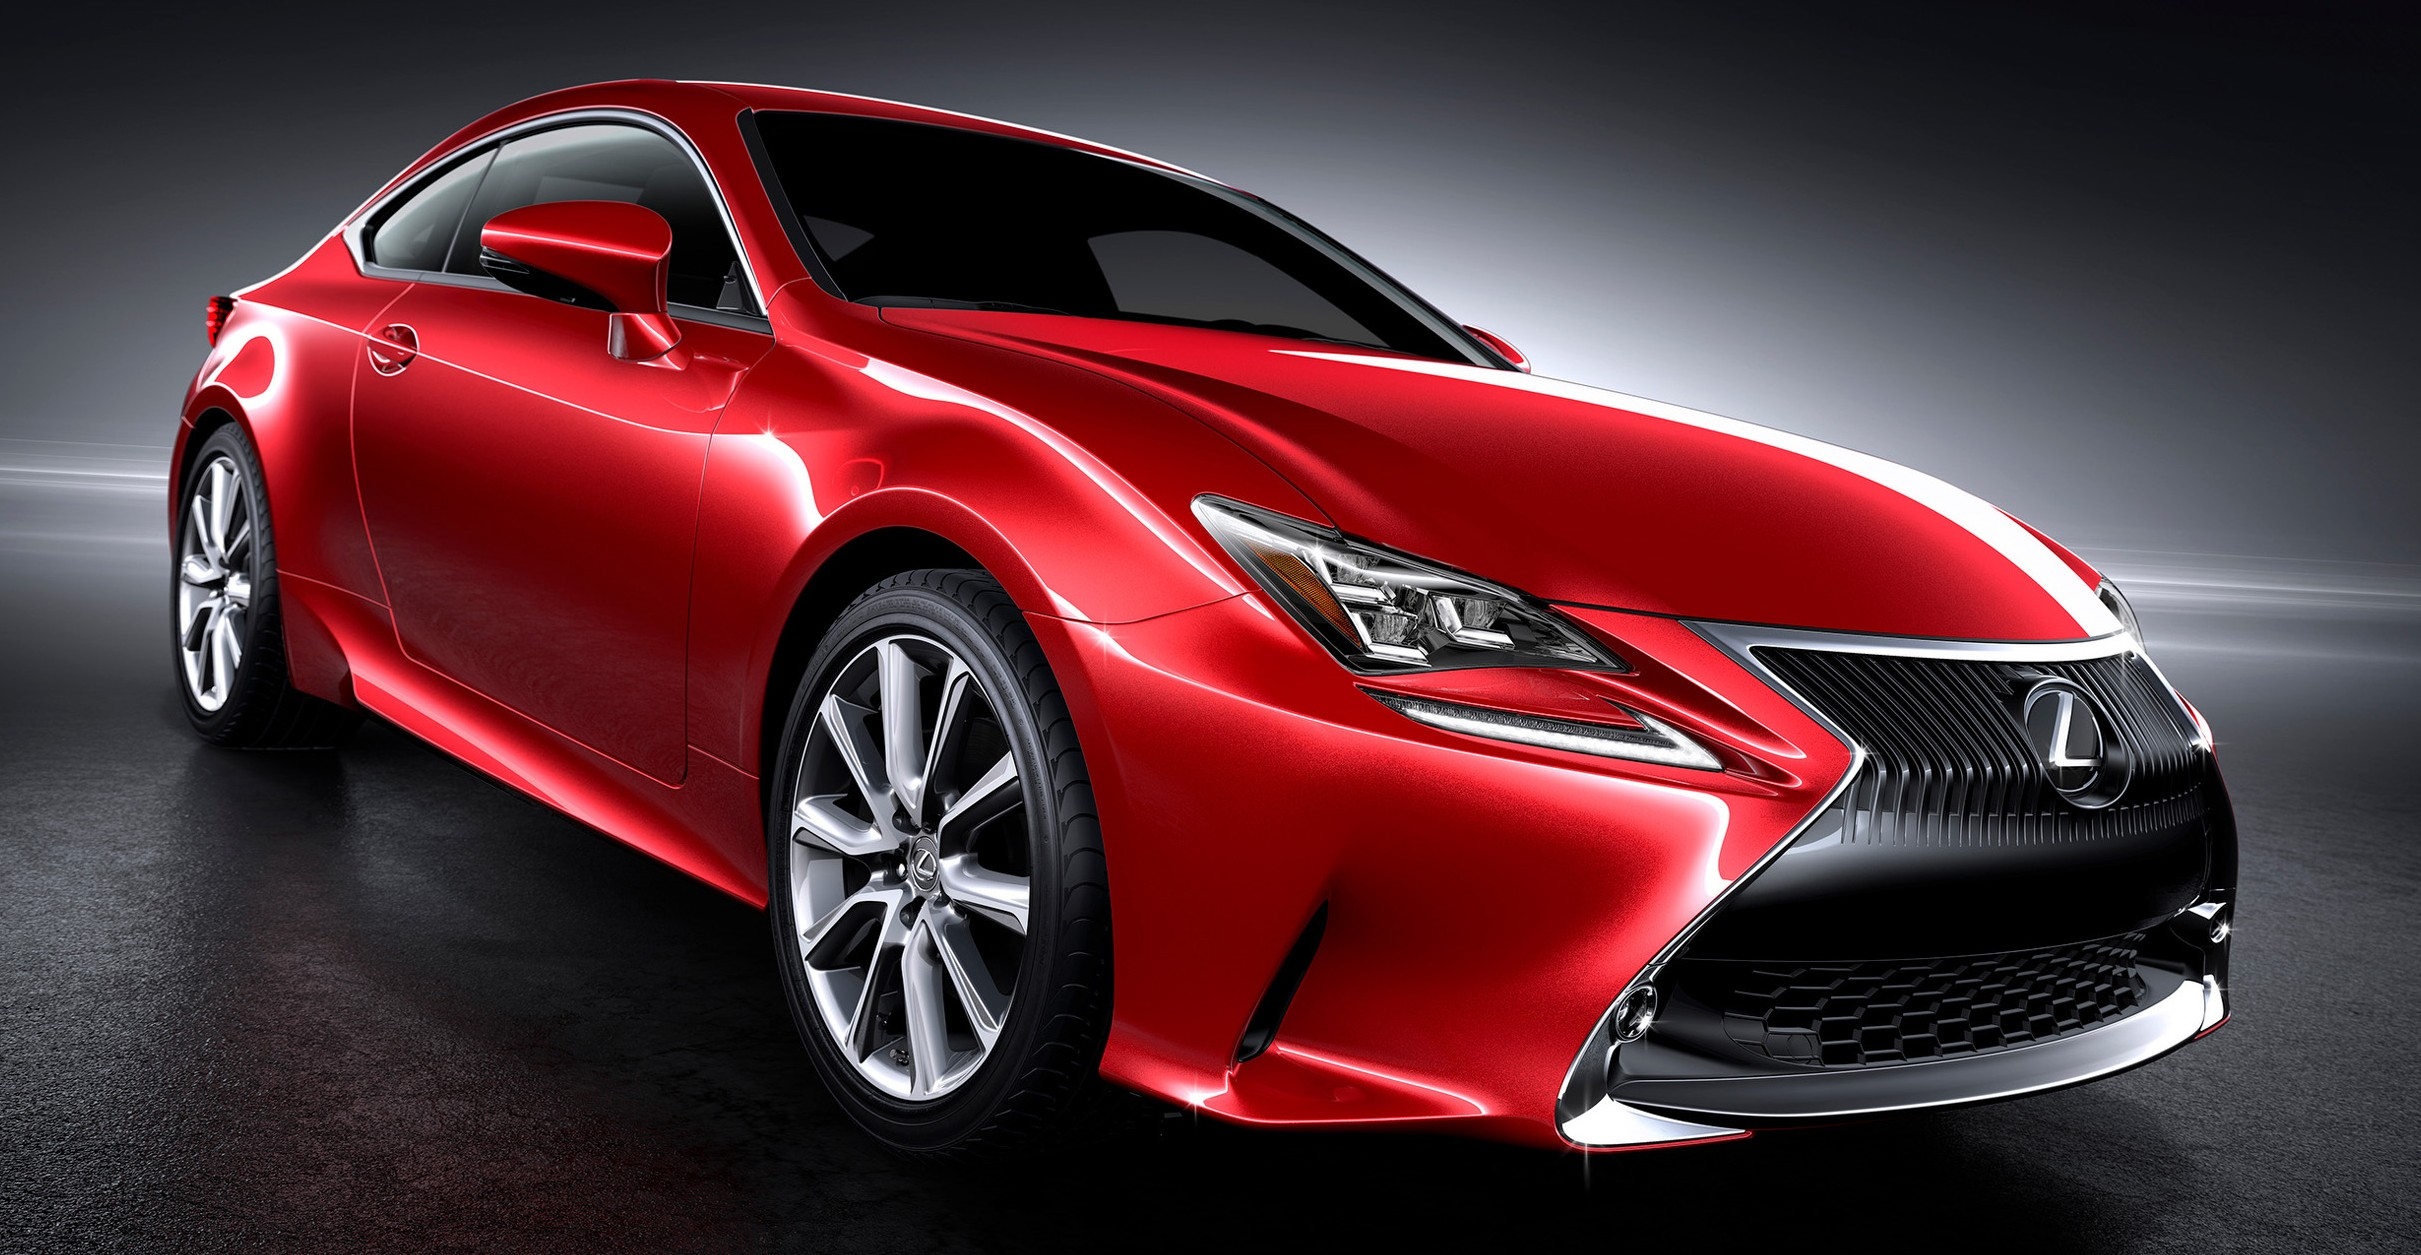 Lexus rc coupe debuts at 2013 tokyo motor show image 211641 for Tokyo motor show lexus